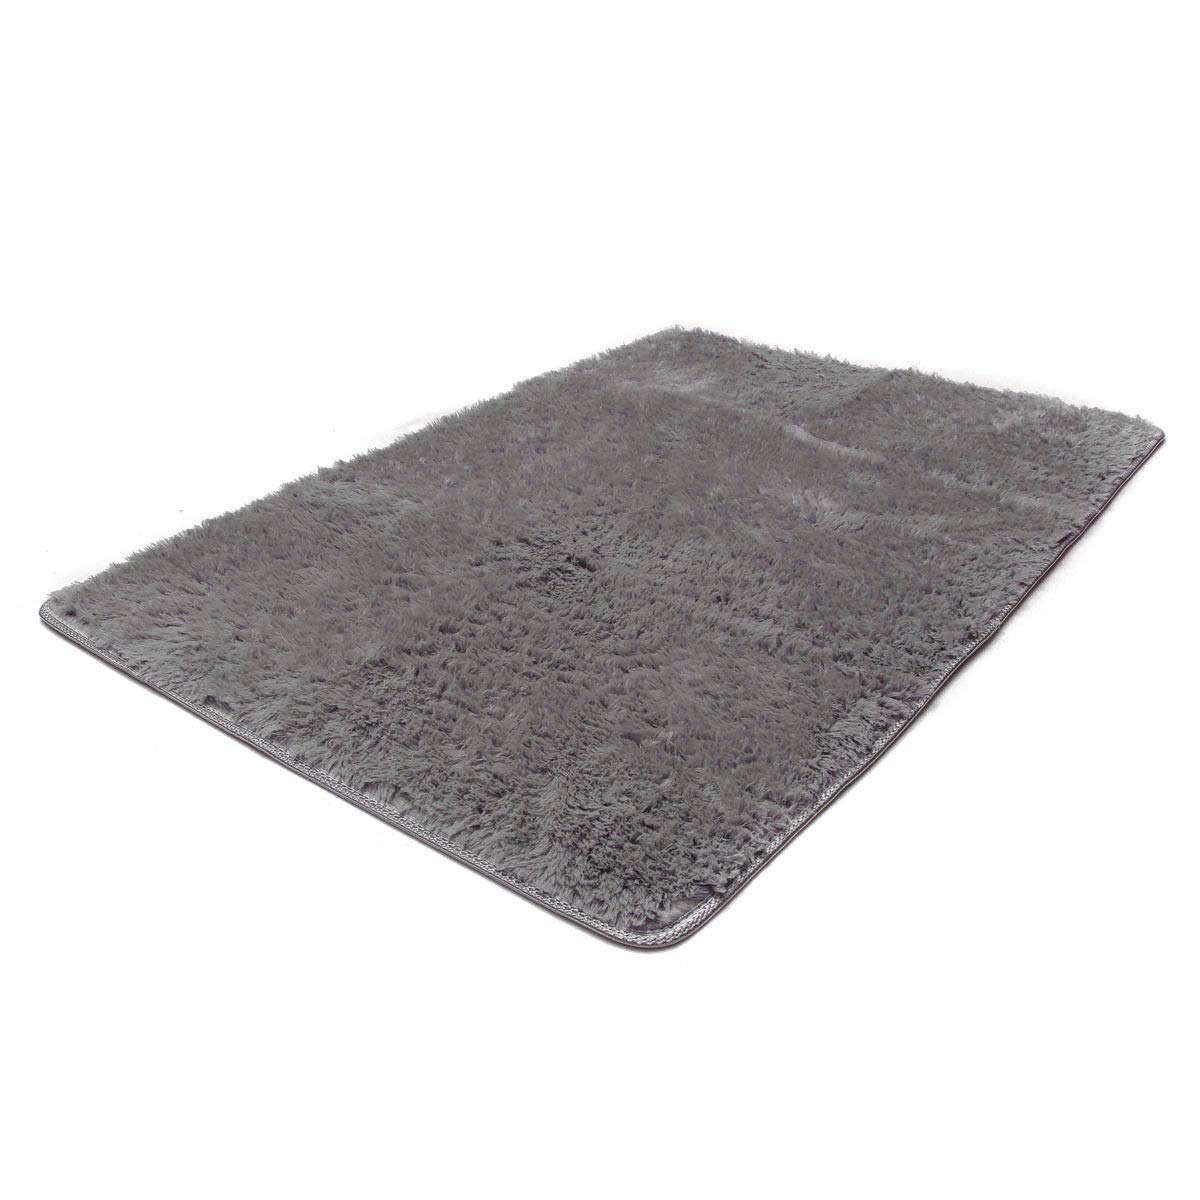 Bath Rugs Fluffy Rugs Anti-skid Shaggy Area Rug Dining Room Home Bedroom Carpet Floor Mat Gray